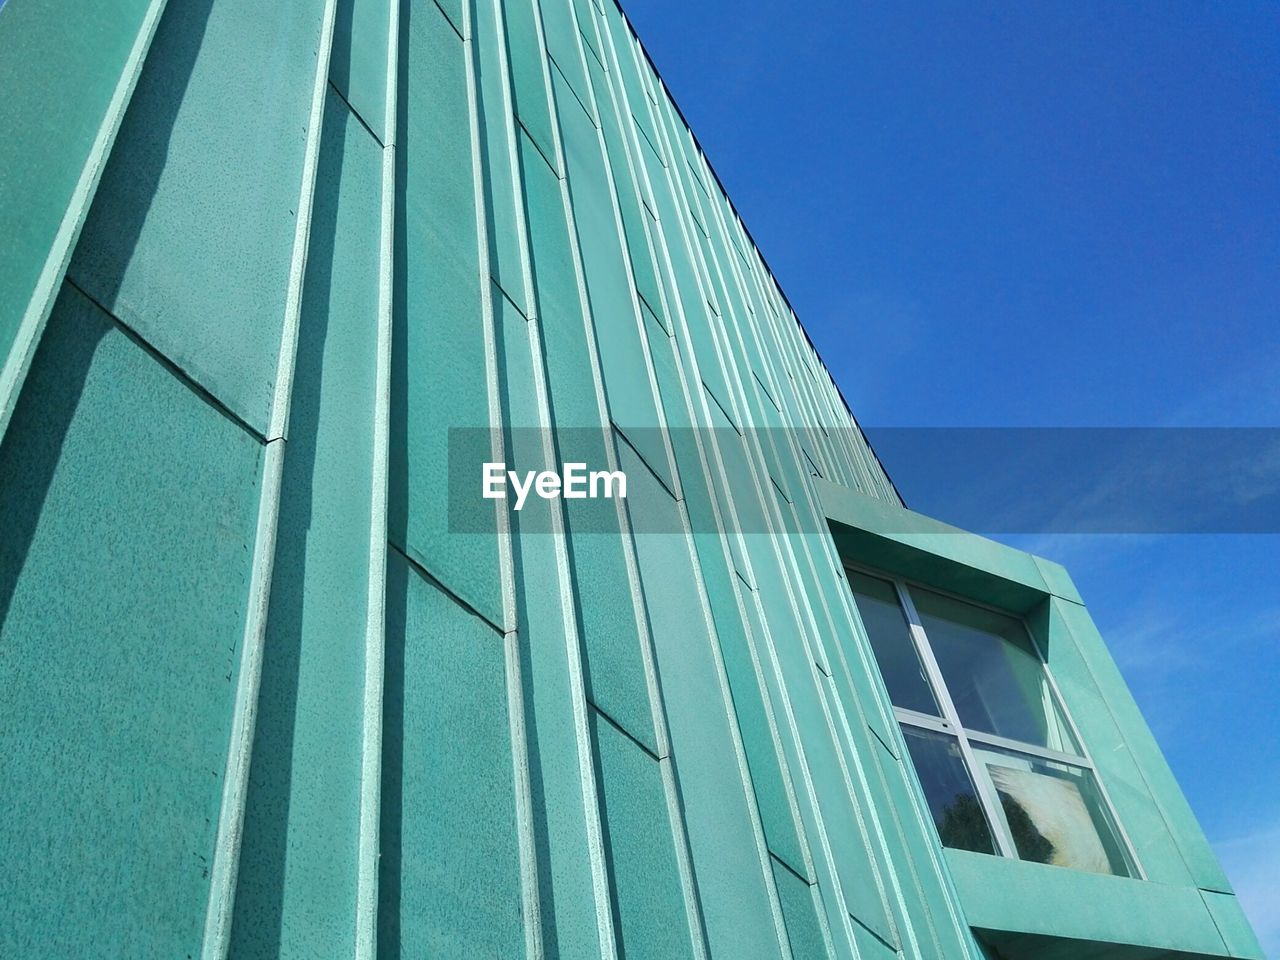 architecture, low angle view, building exterior, built structure, window, blue, day, modern, outdoors, no people, sky, city